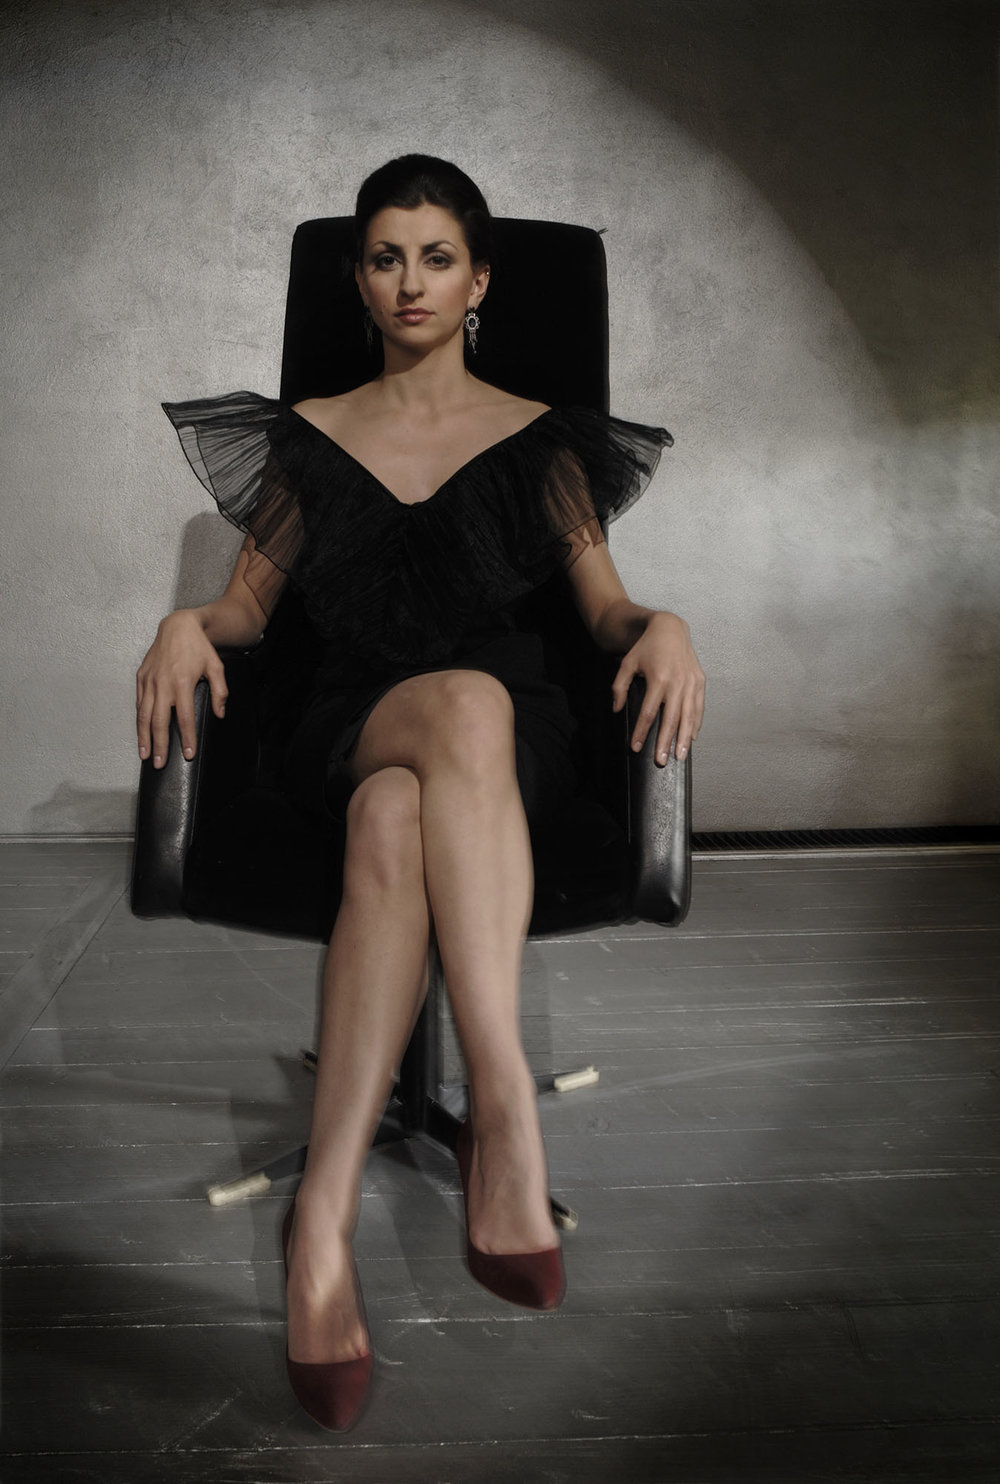 Dark haired lady sitting in a black chair